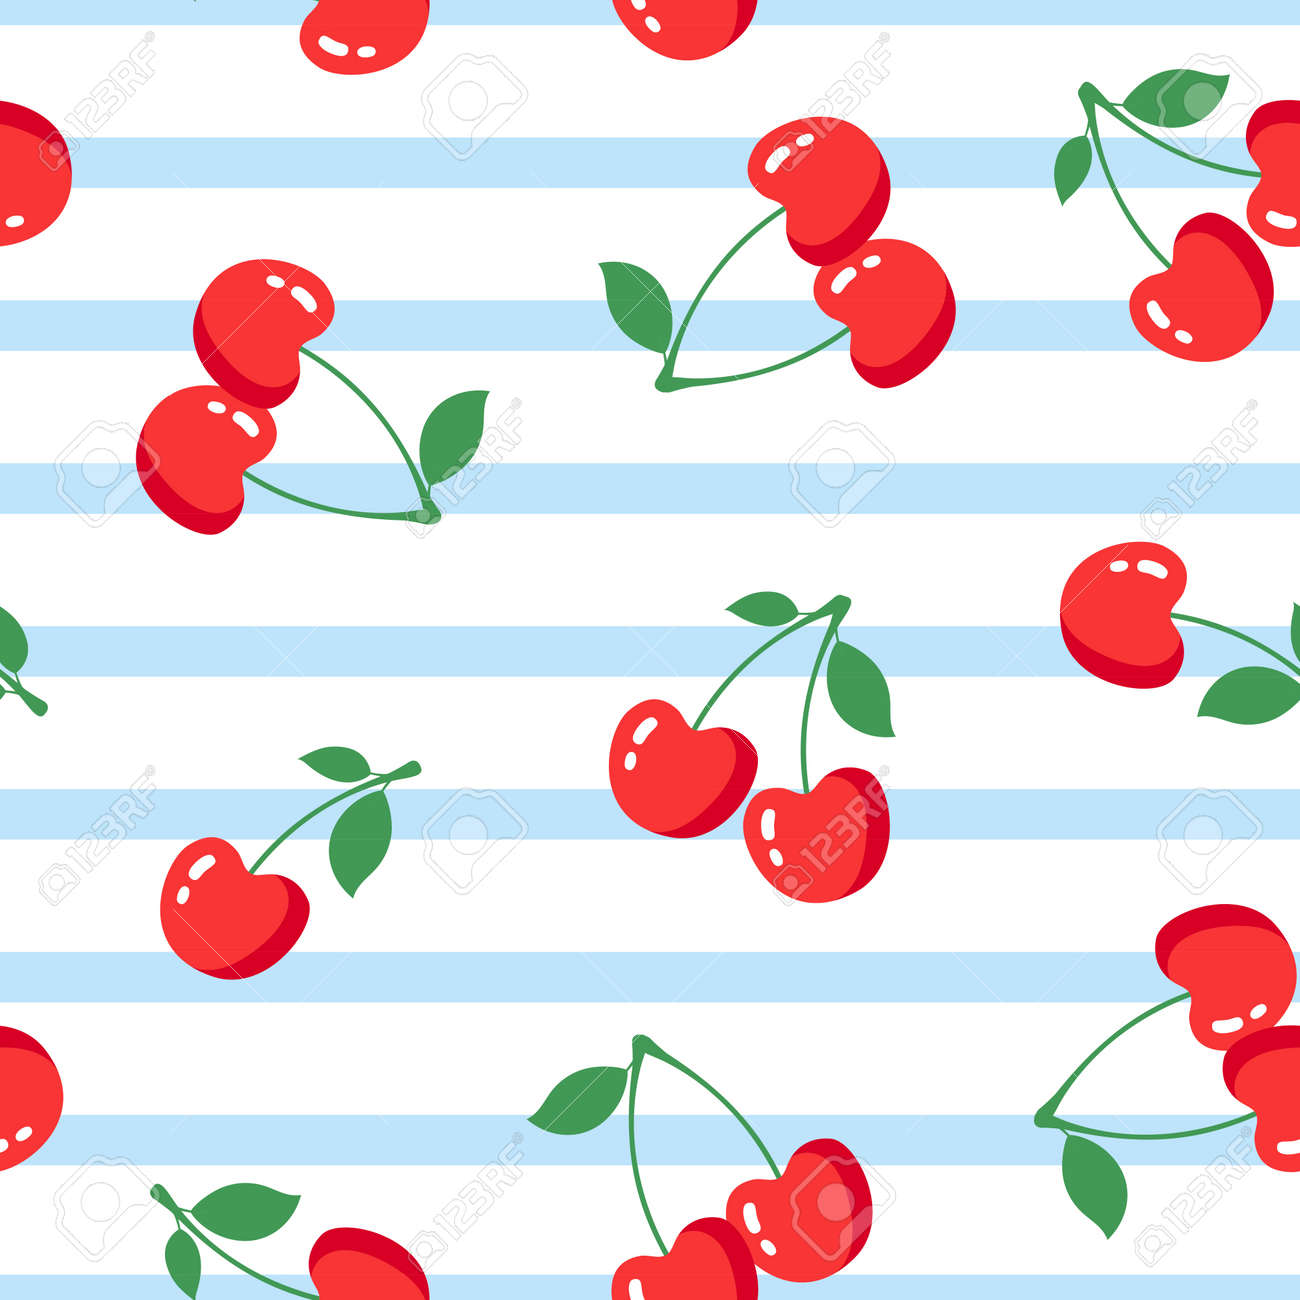 Seamless pattern with cherries on white background. Vector illustration - 171630098